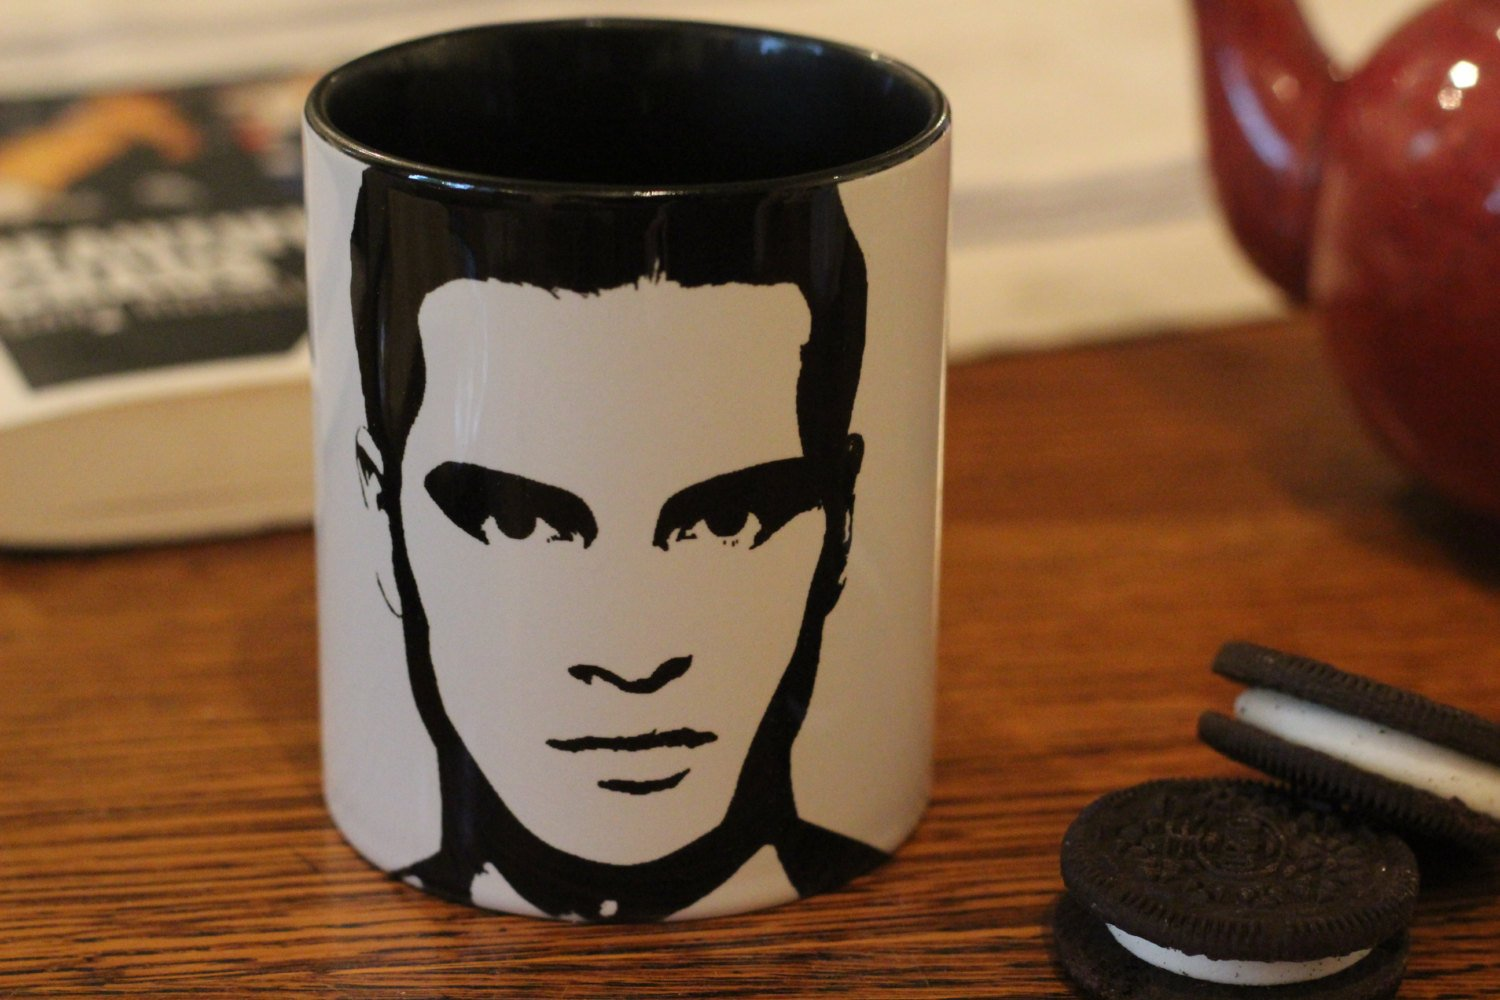 Michael Malarkey - The Vampire Diaries - The Originals - TVD - Enzo - Hand Printed Mug